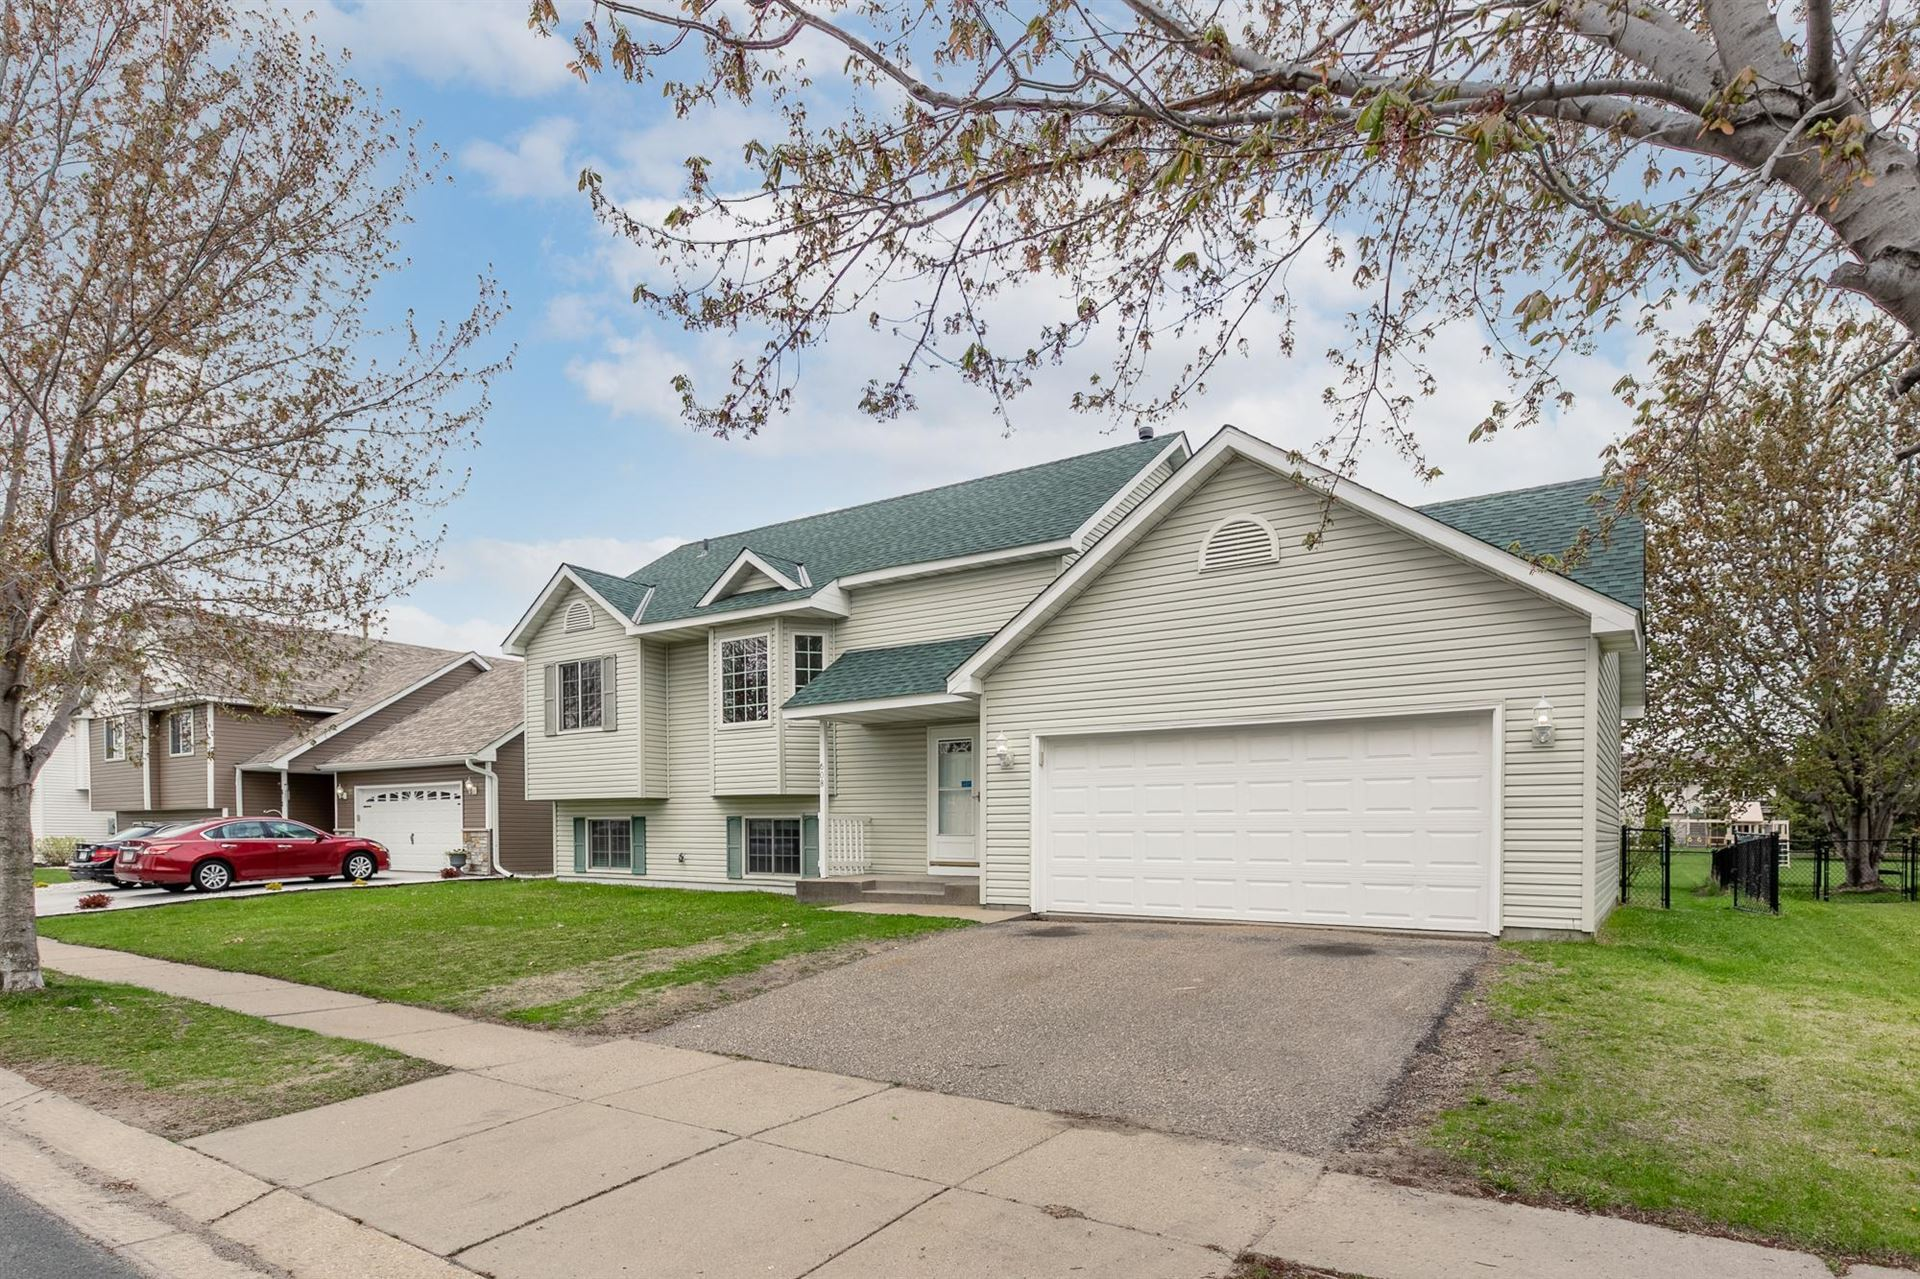 Photo of 608 12th Street, Farmington, MN 55024 (MLS # 5754876)